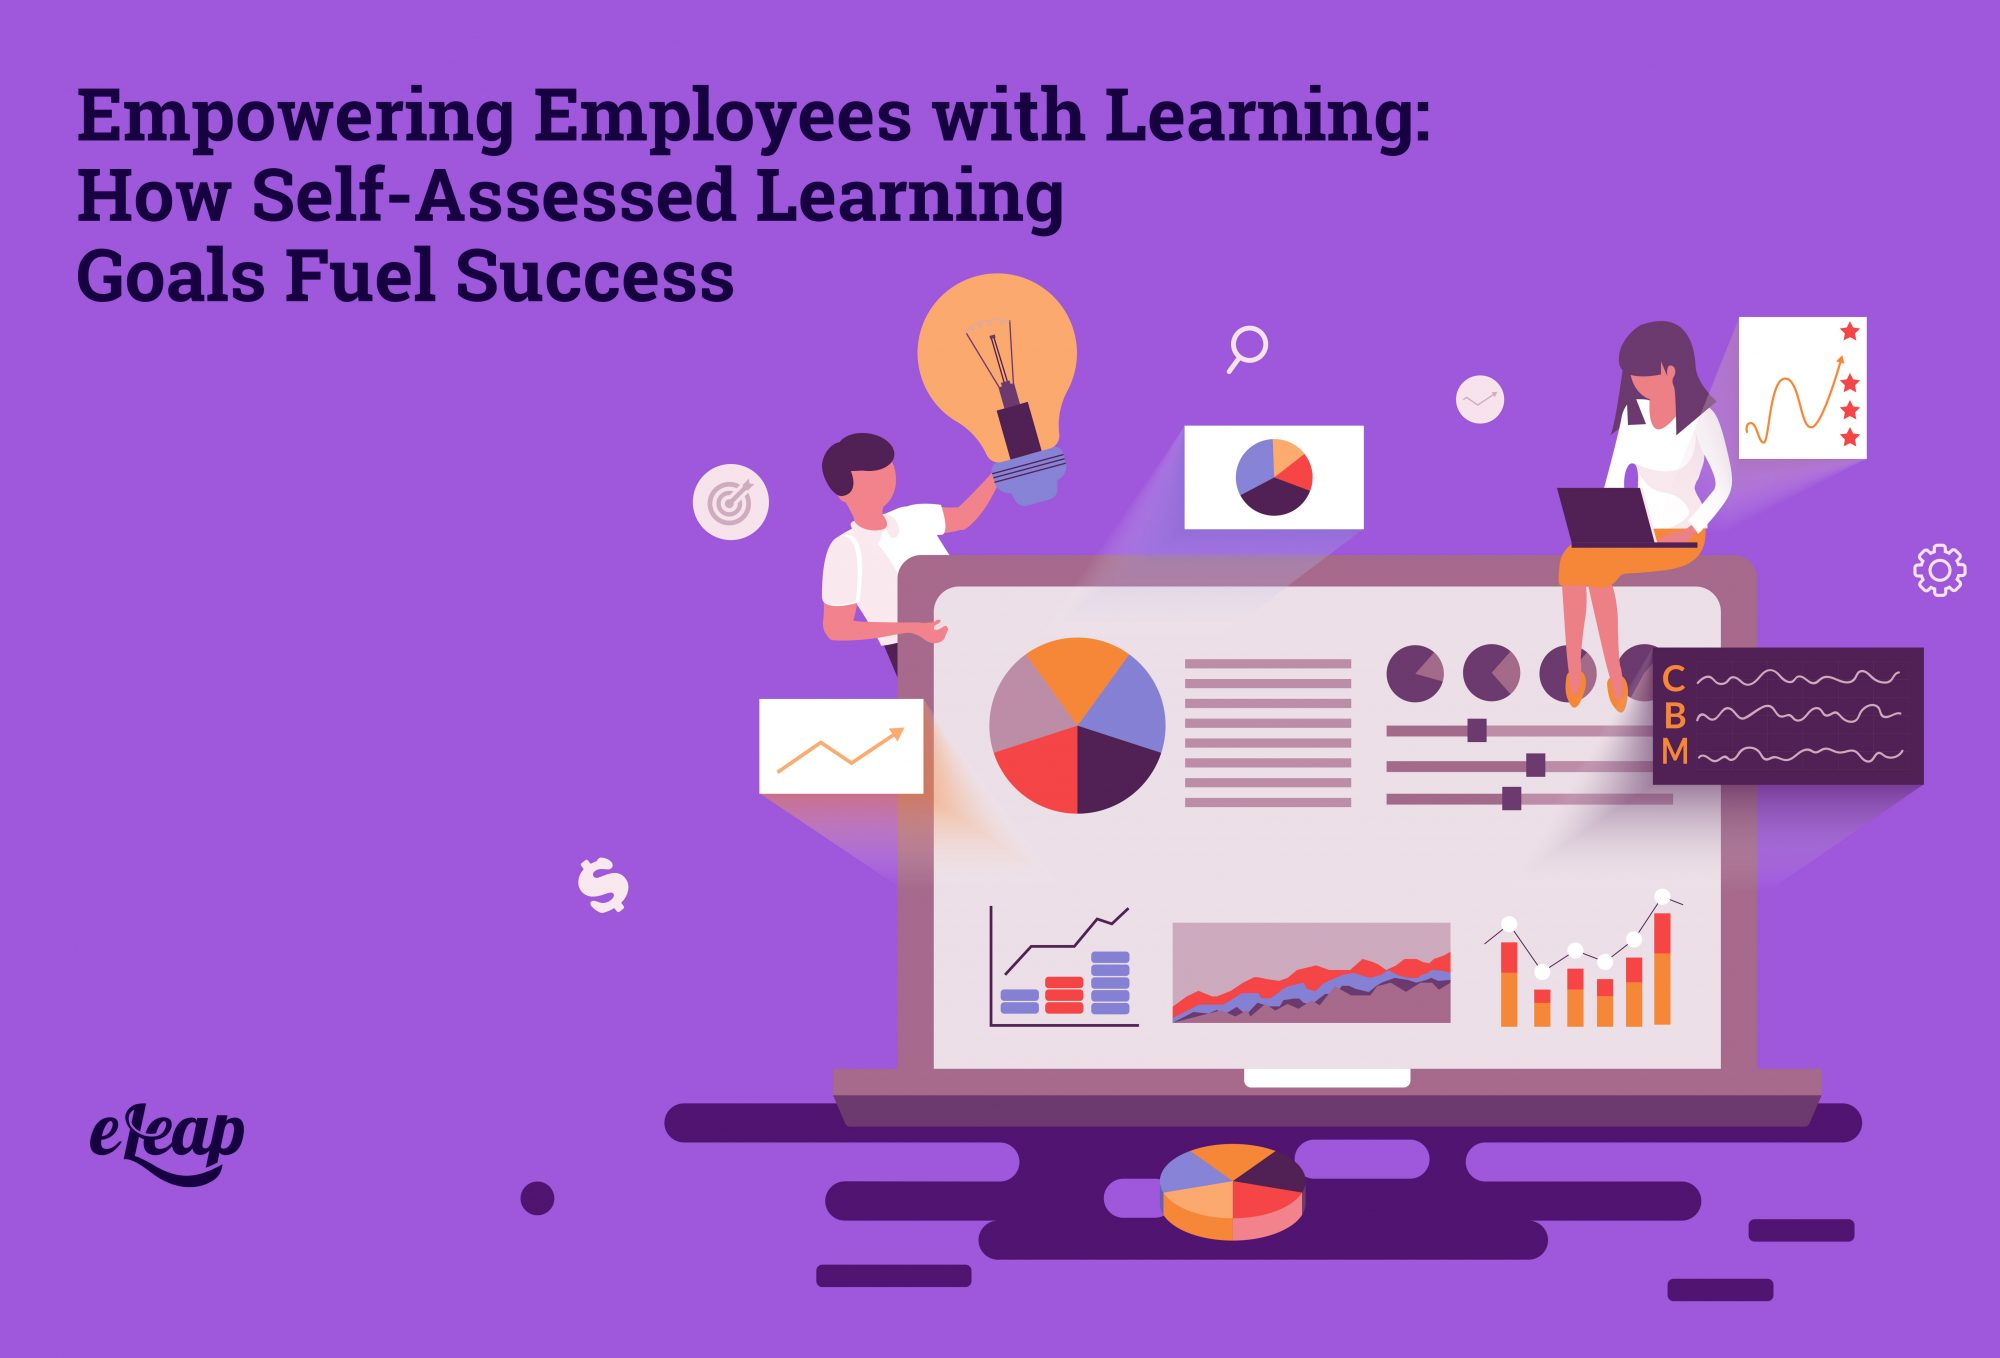 Empowering Employees with Learning: How Self-Assessed Learning Goals Fuel Success